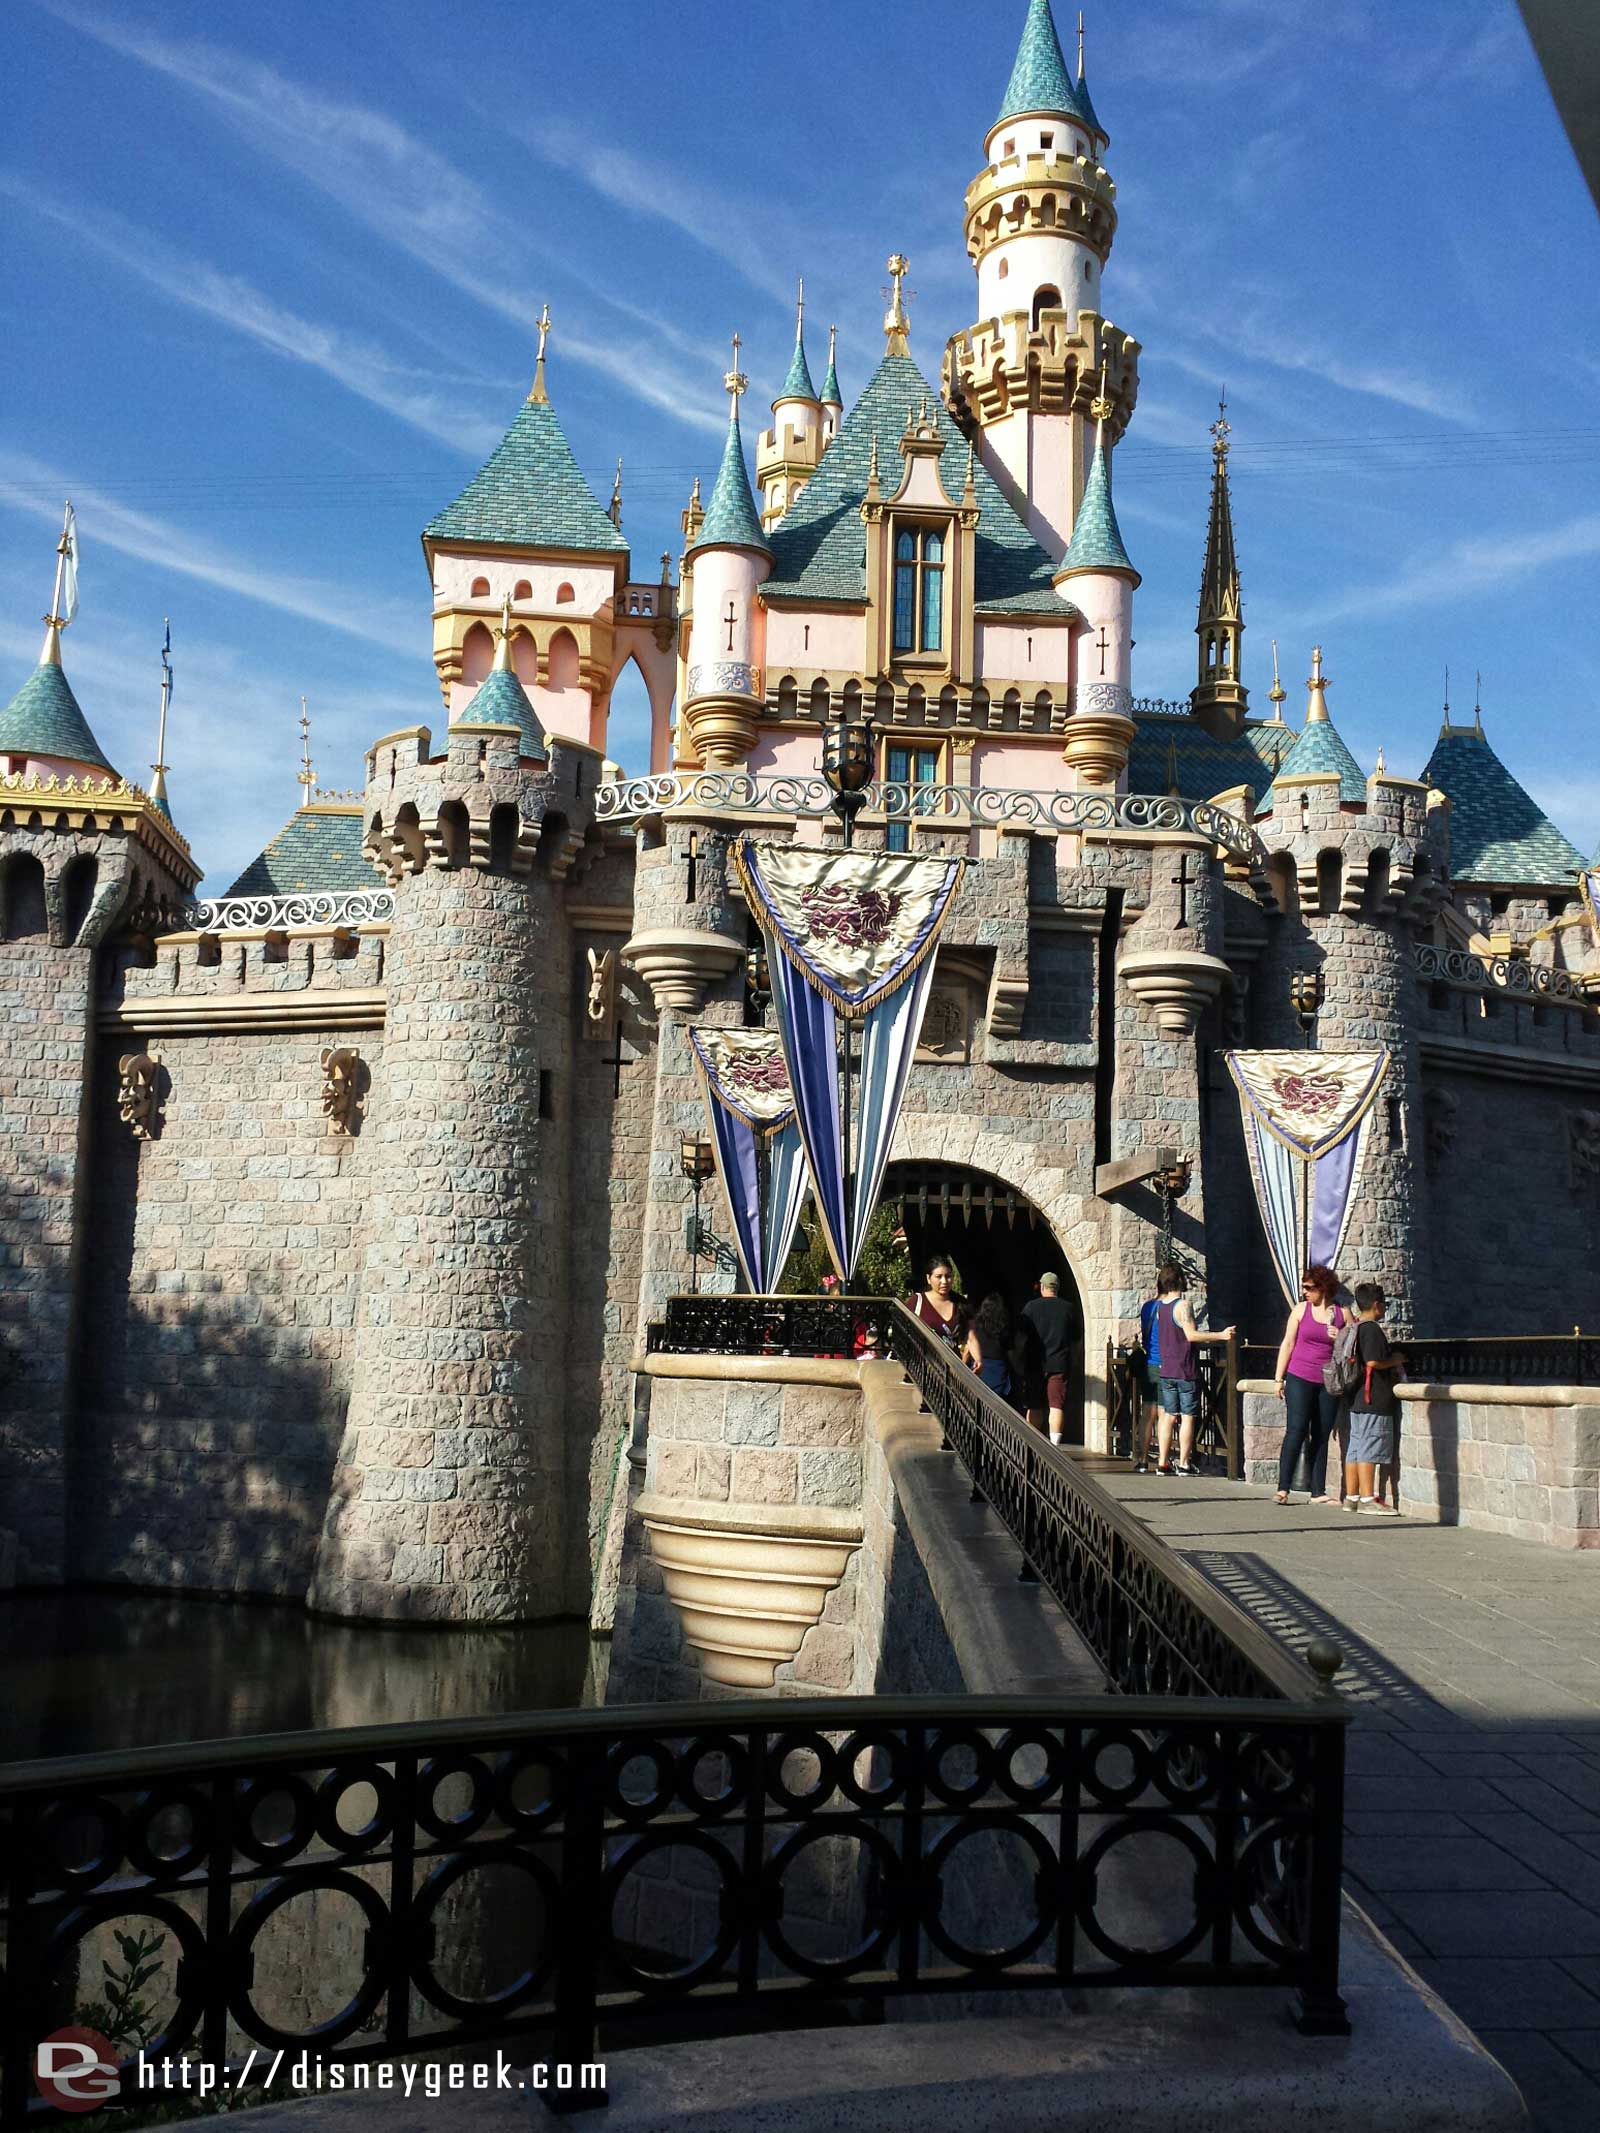 Sleeping Beauty Castle with new safety rails in the foreground